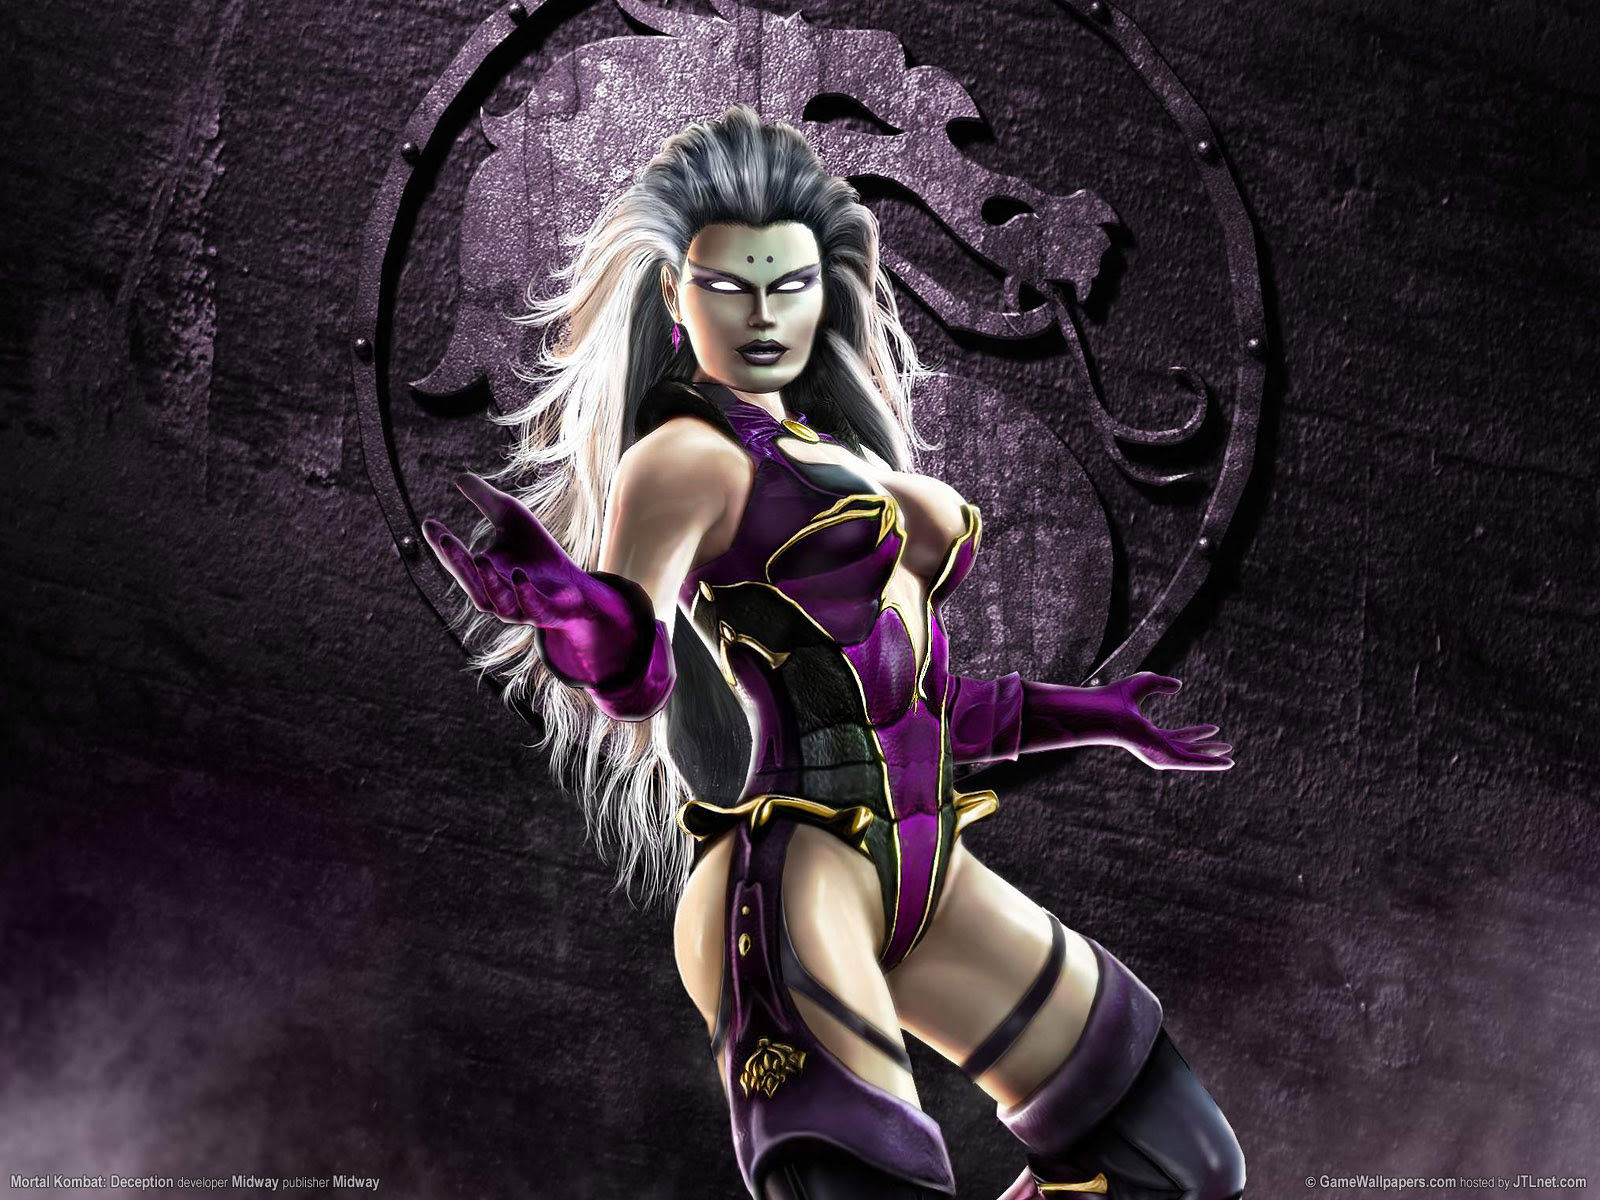 Mk Wallpapers Mortal Kombat Wallpaper 27864251 Fanpop